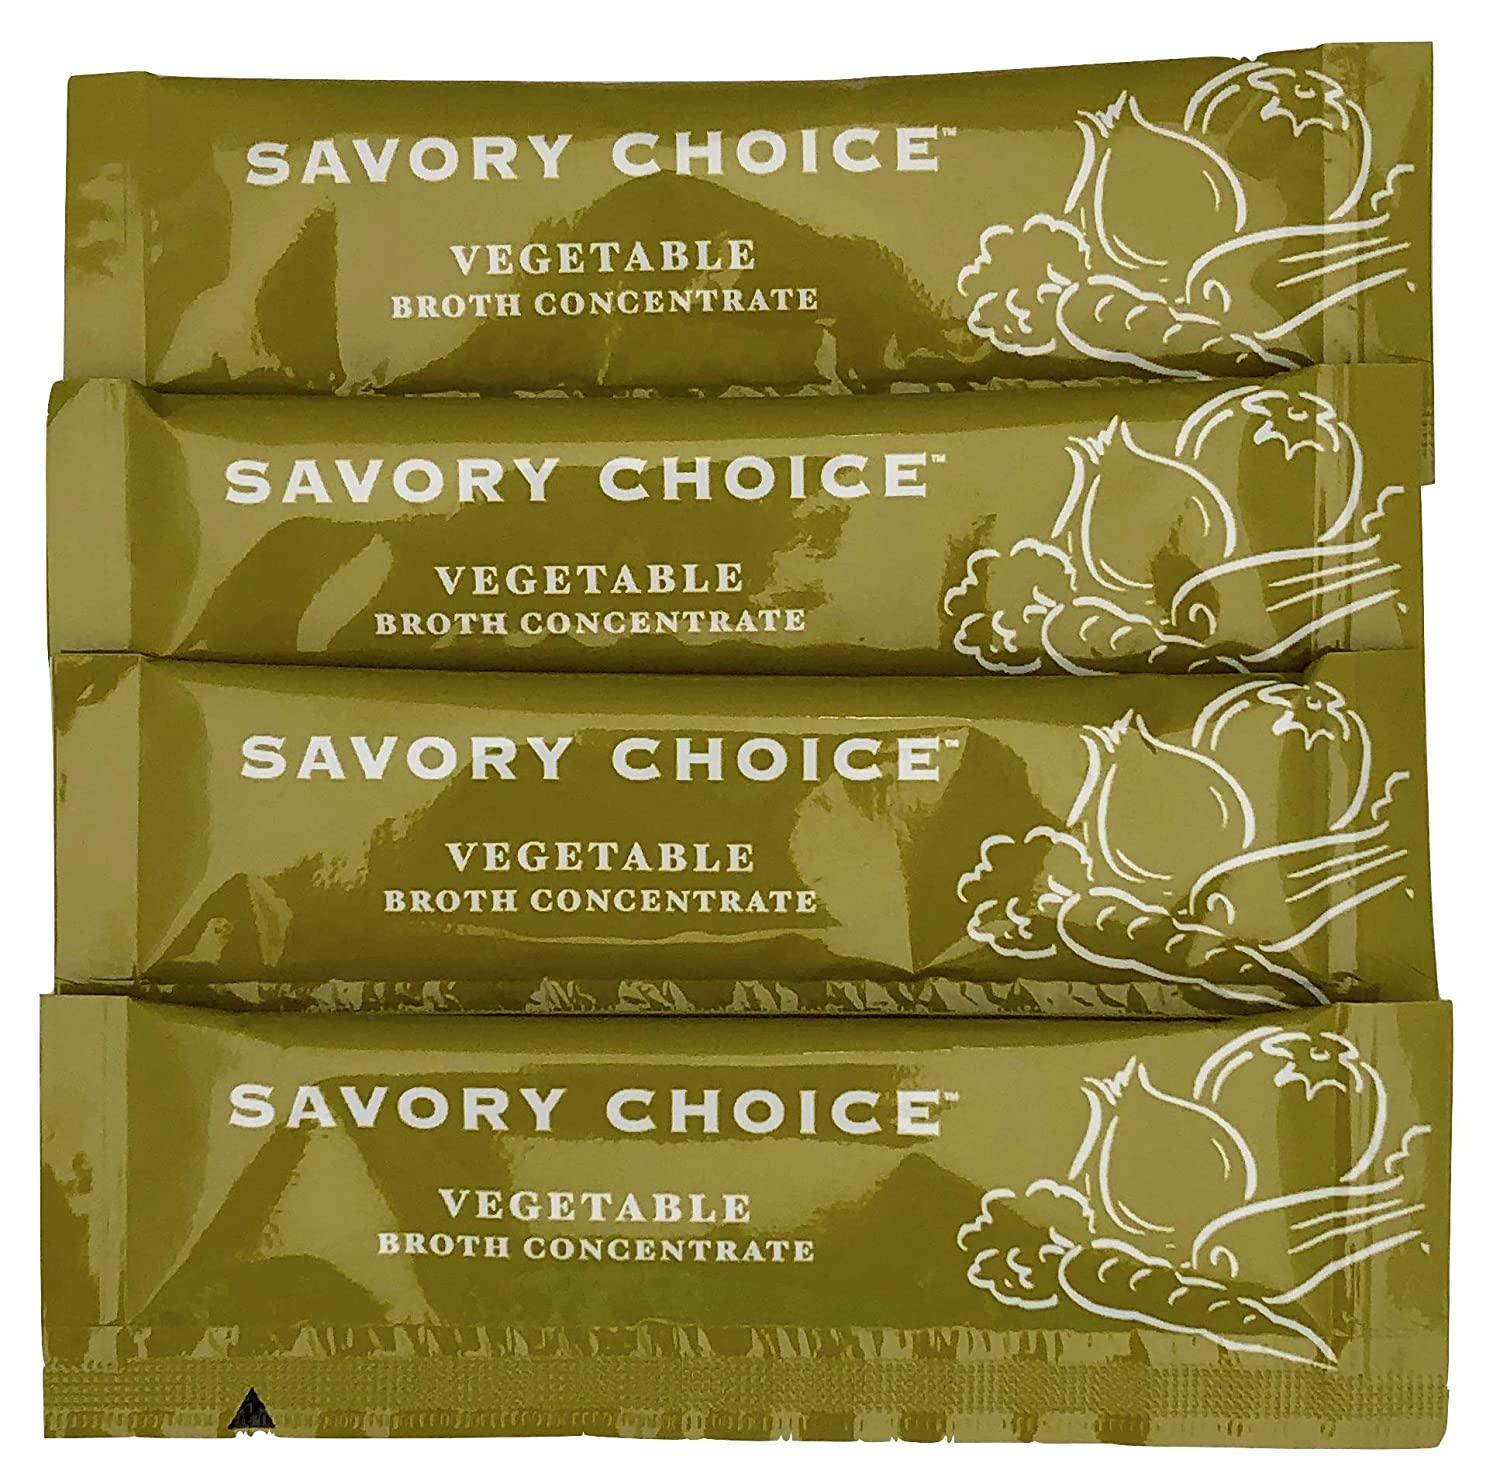 Savory Choice Max 84% OFF Reduced Sodium Vegetable Concentrate Pac 50 Al sold out. Broth